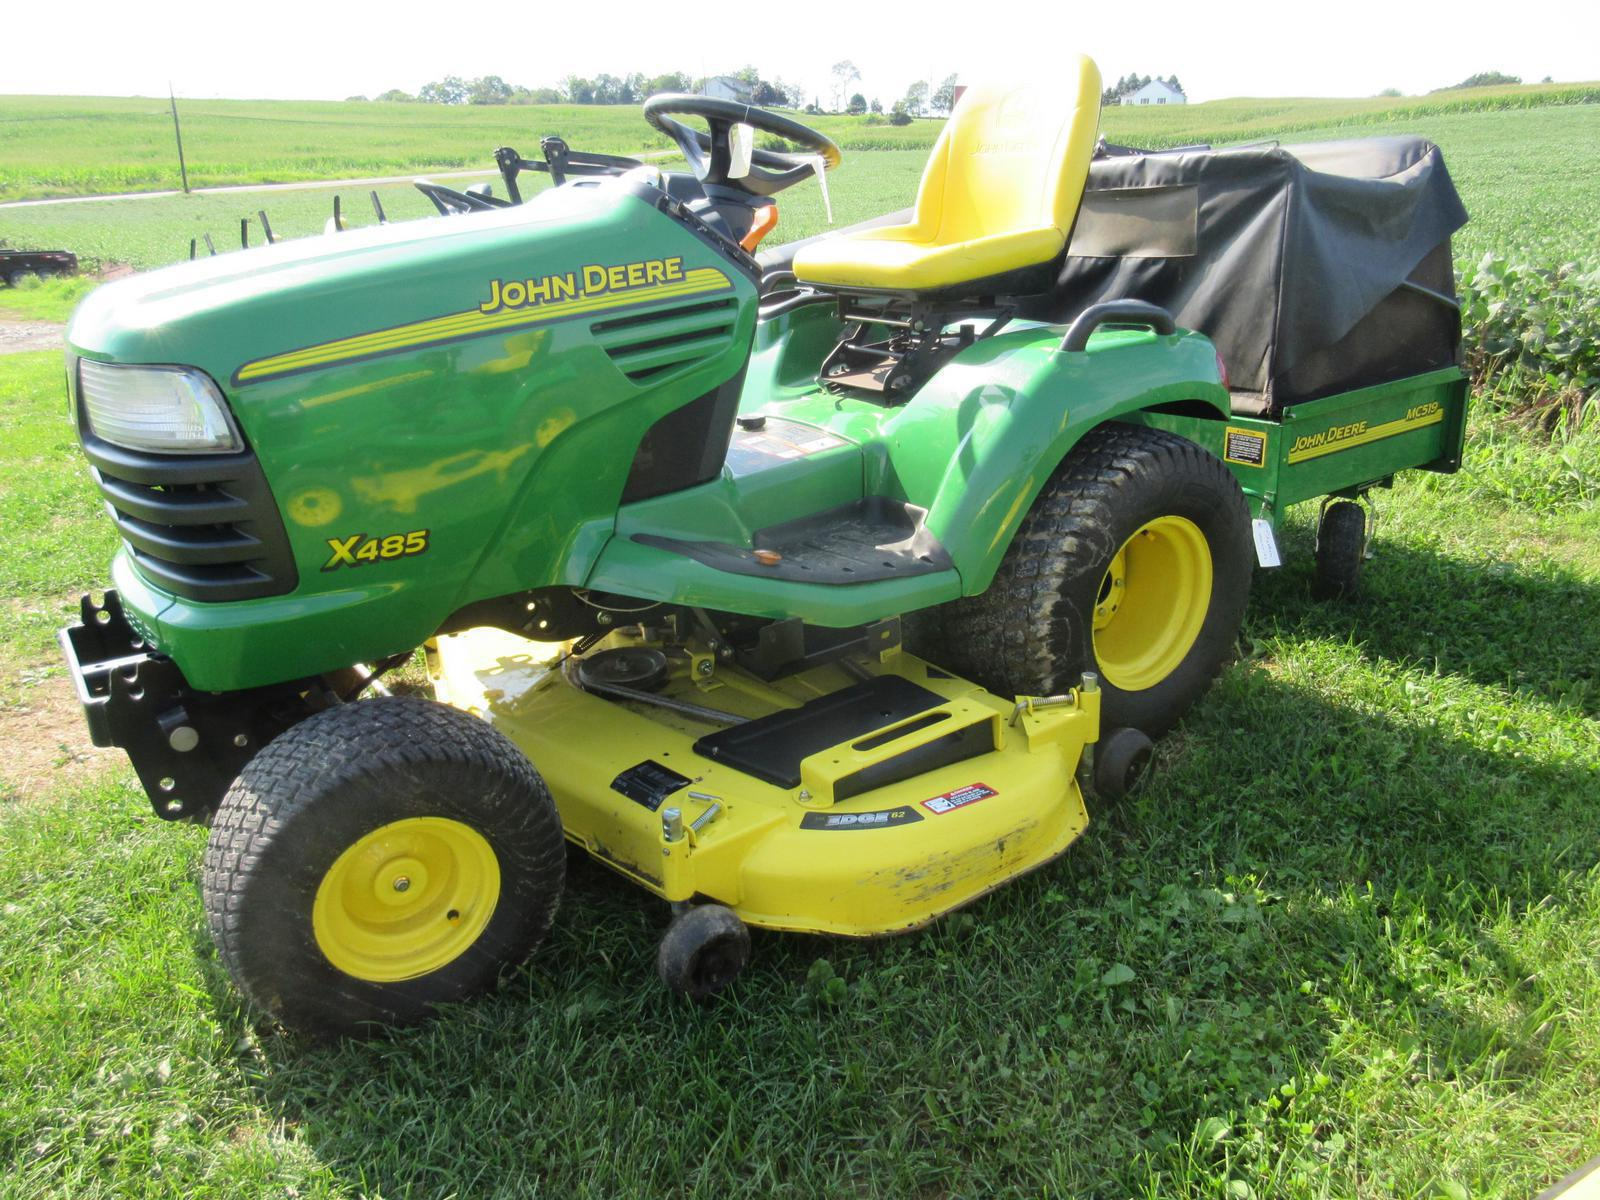 Inventory from John Deere Hilltop Sales & Service Bangor, PA